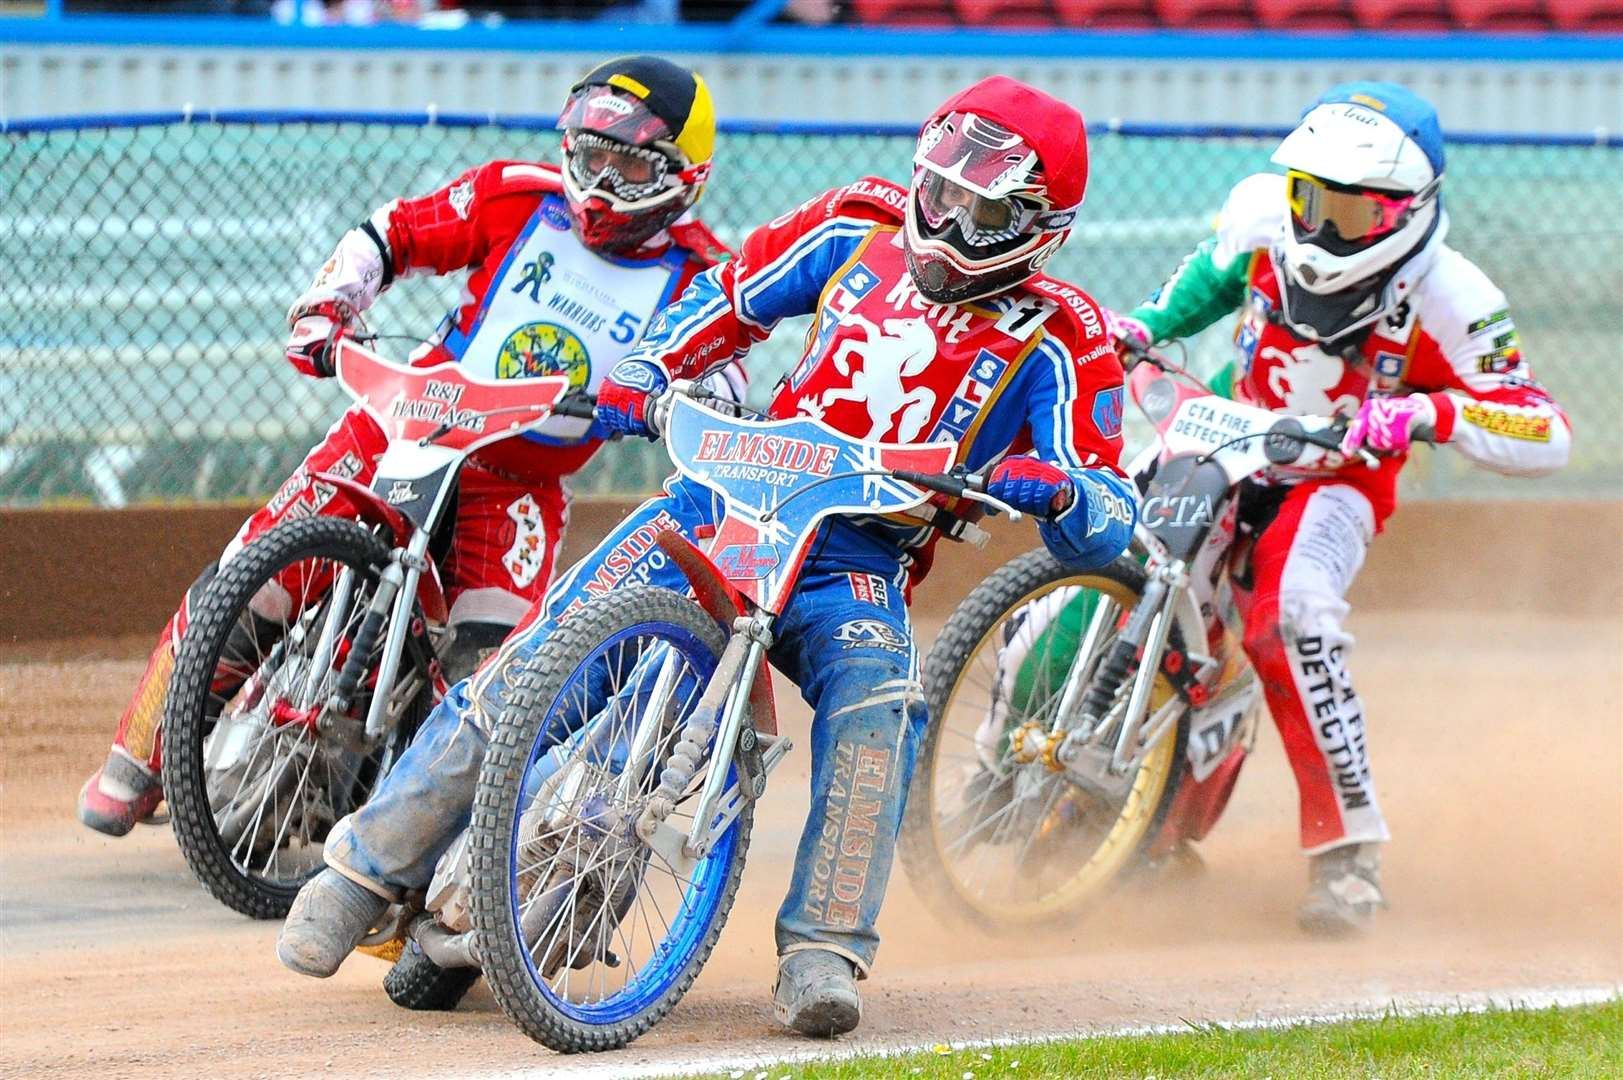 Kent Kings v Isle of Wight in the Knockout Cup. Kent's Luke Bowen (red helmet) and Danny Ayres (blue) lead the way